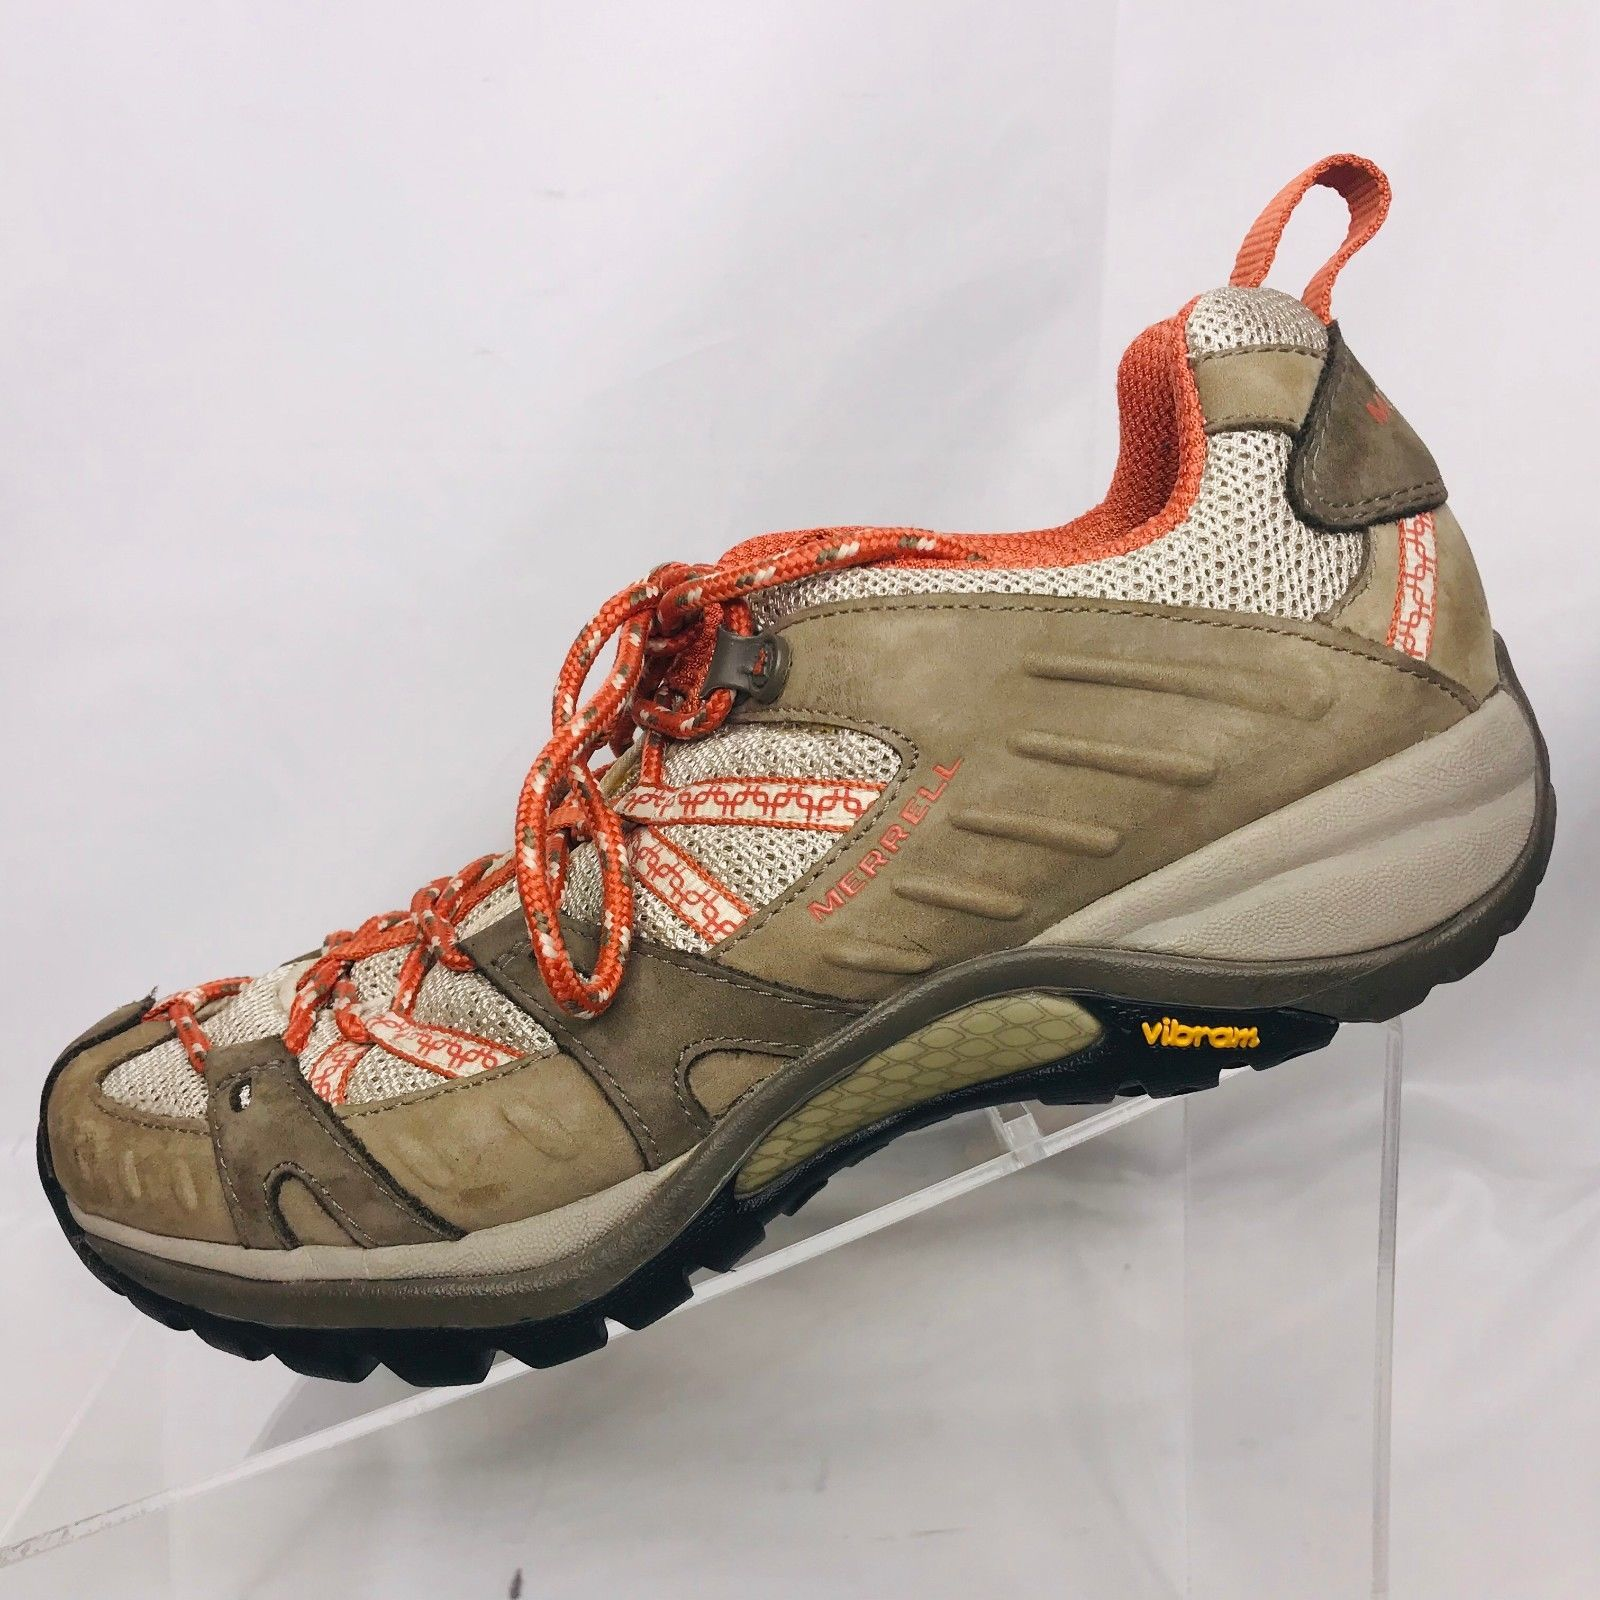 ca07919be347 57. 57. Previous. Merrell Siren Sport Womens Size 8 Vibram Sole Hiking  Trail Shoes Brindle Coral